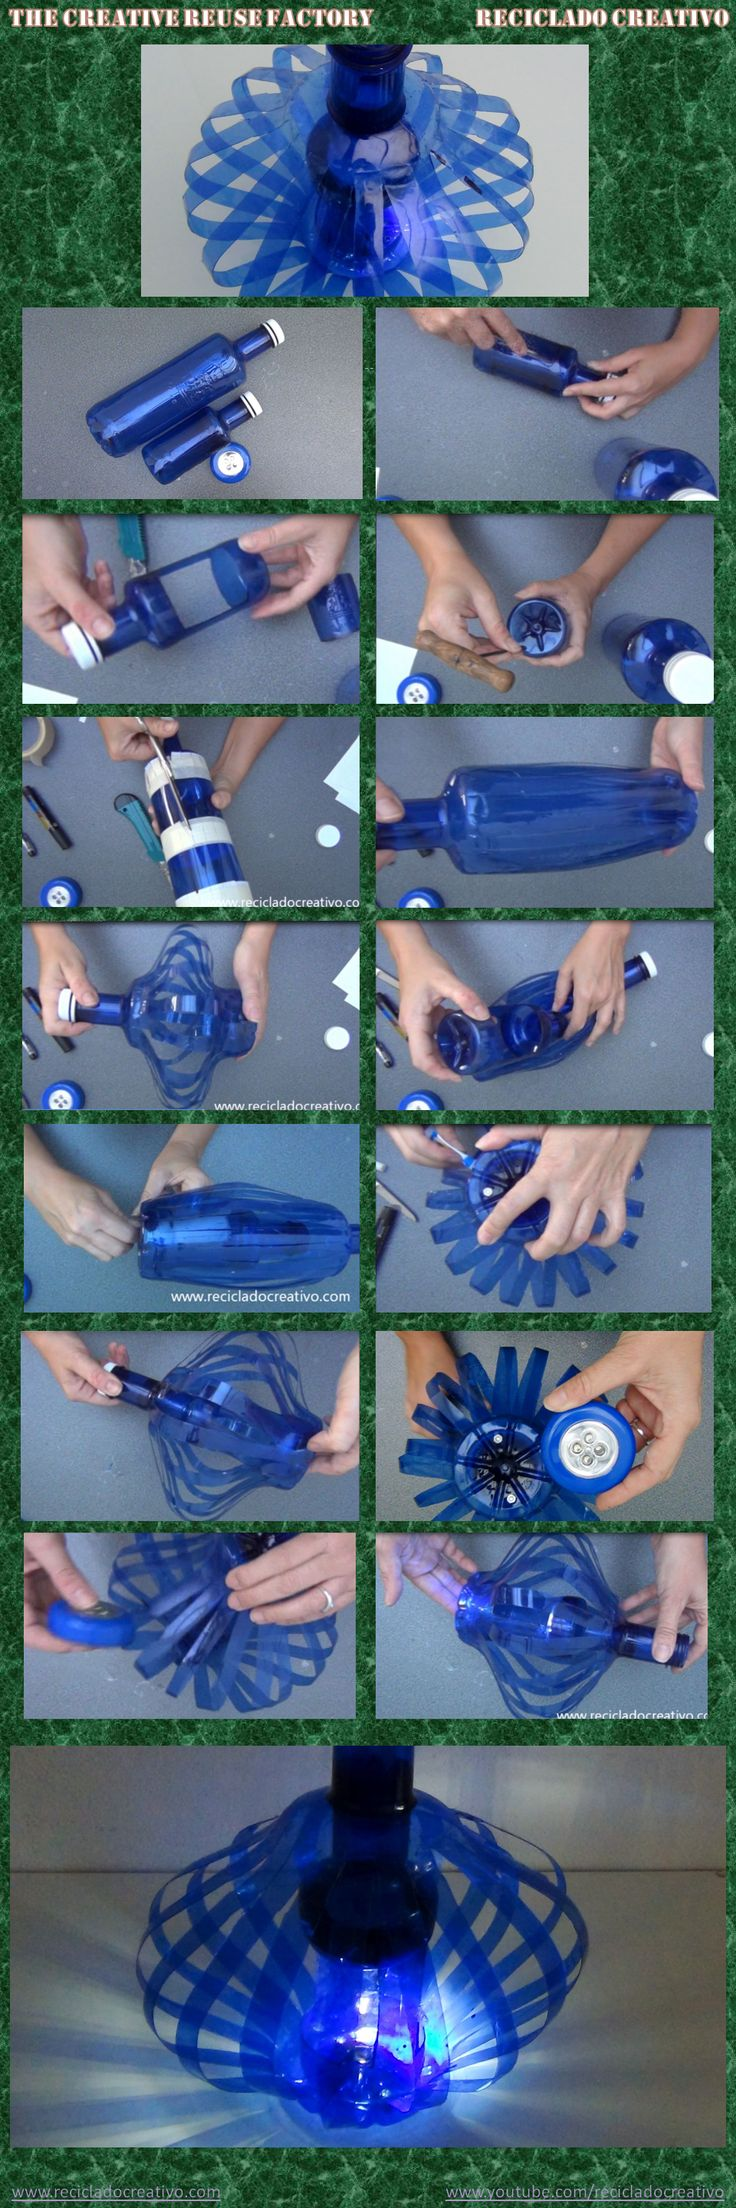 How to make a lamp with two plastic bottles #recycled #upcycled #reuse